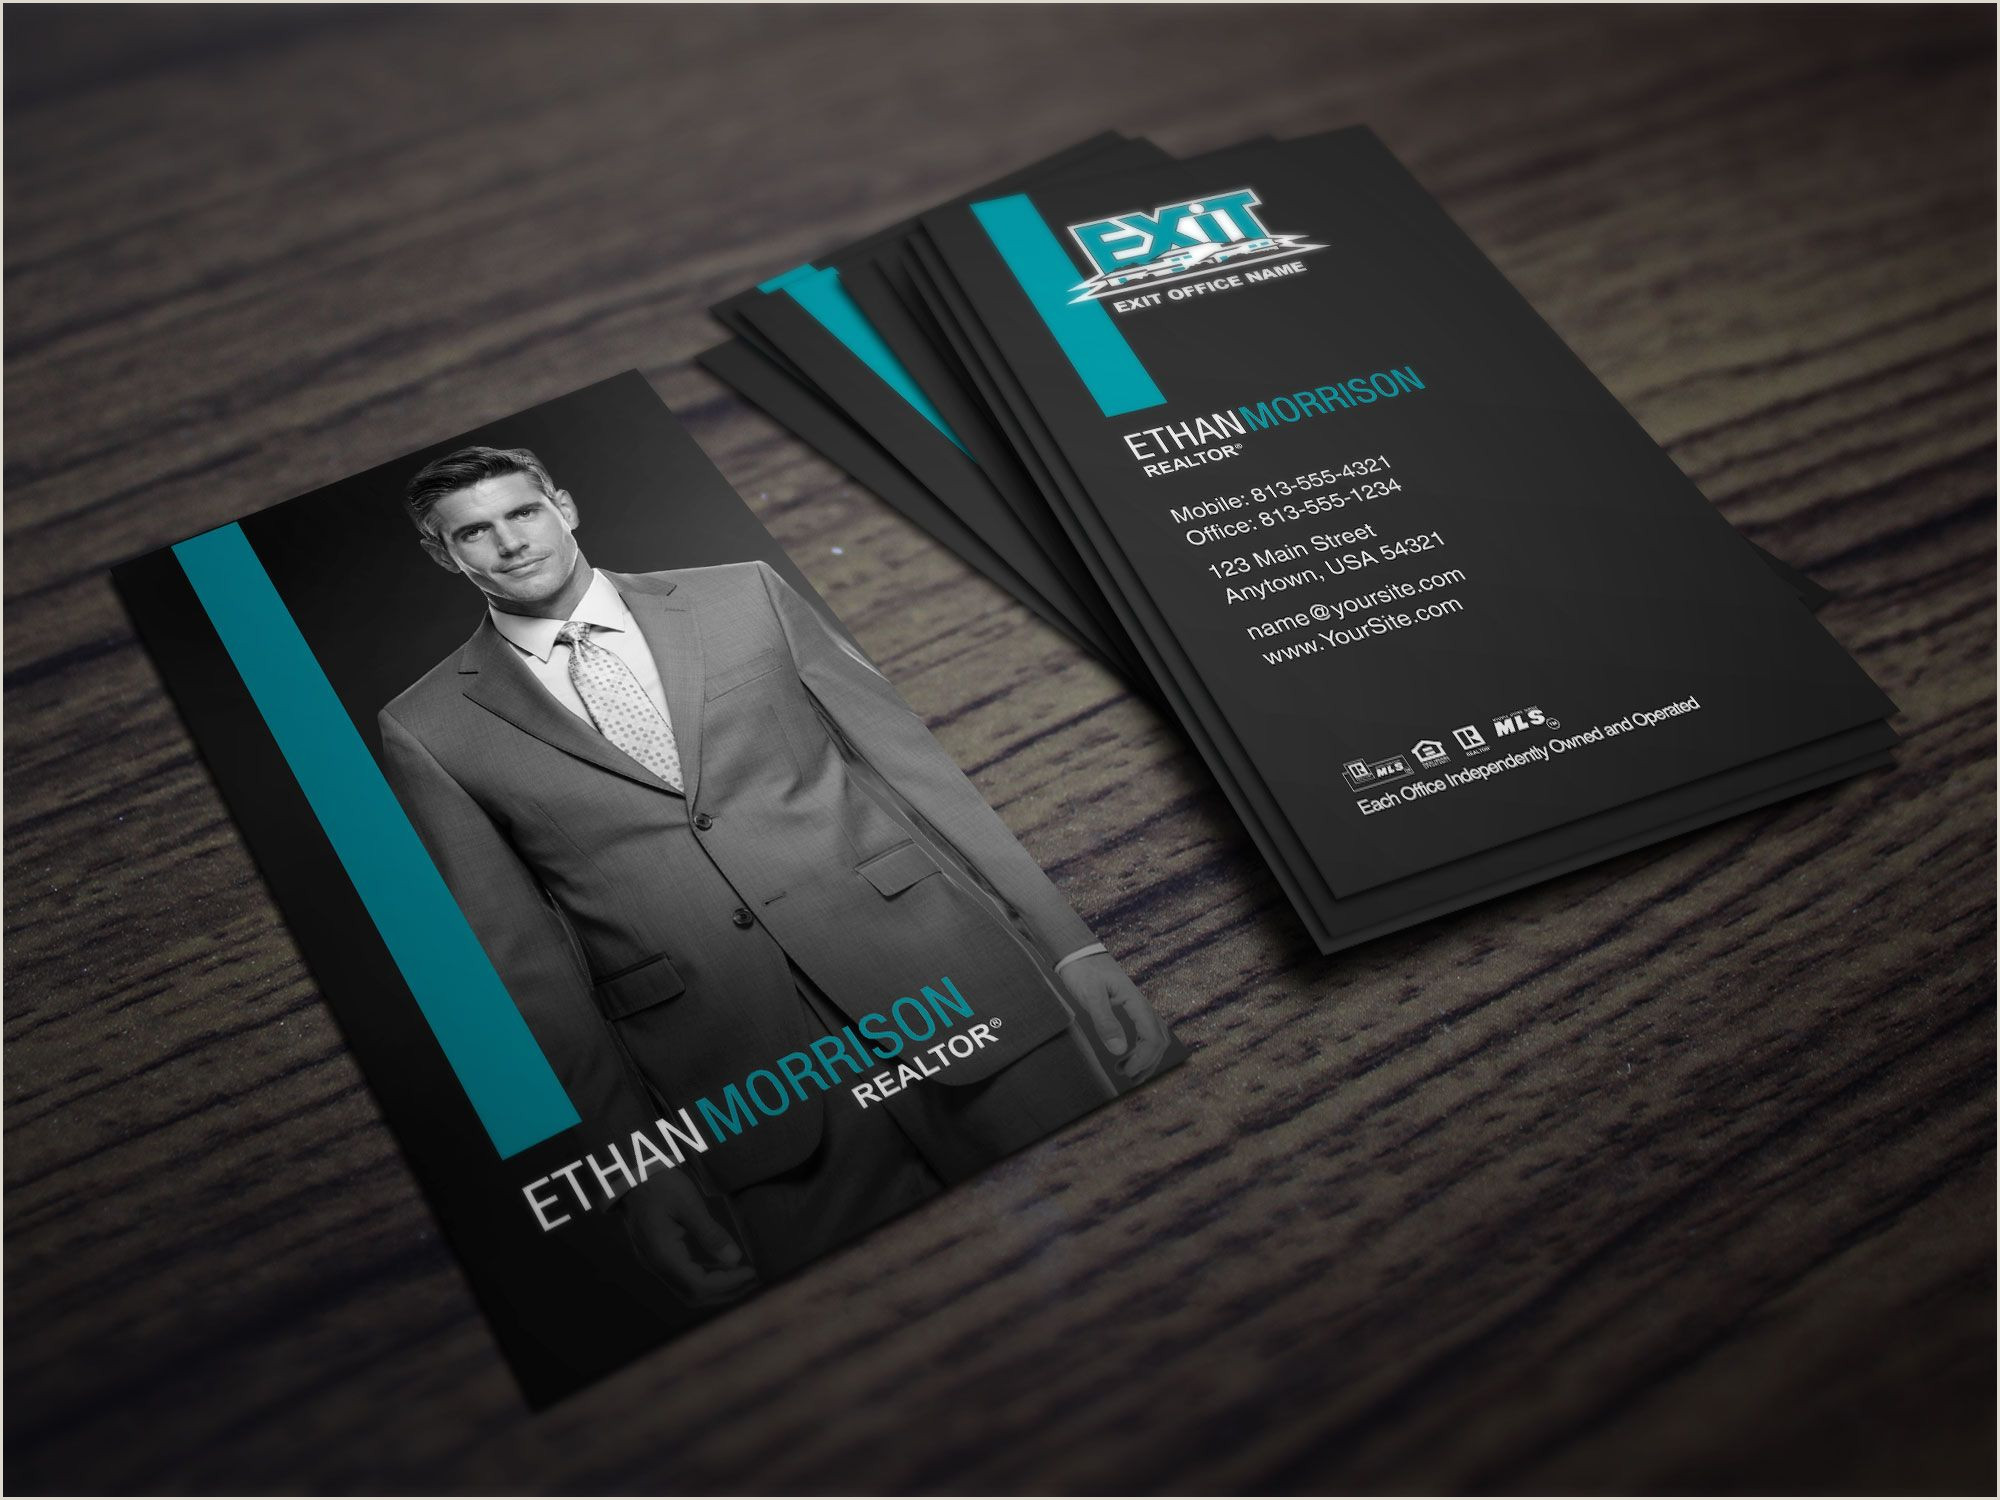 Unique Realtor Business Cards Clean Dark Exit Realty Business Card Design For Realtors